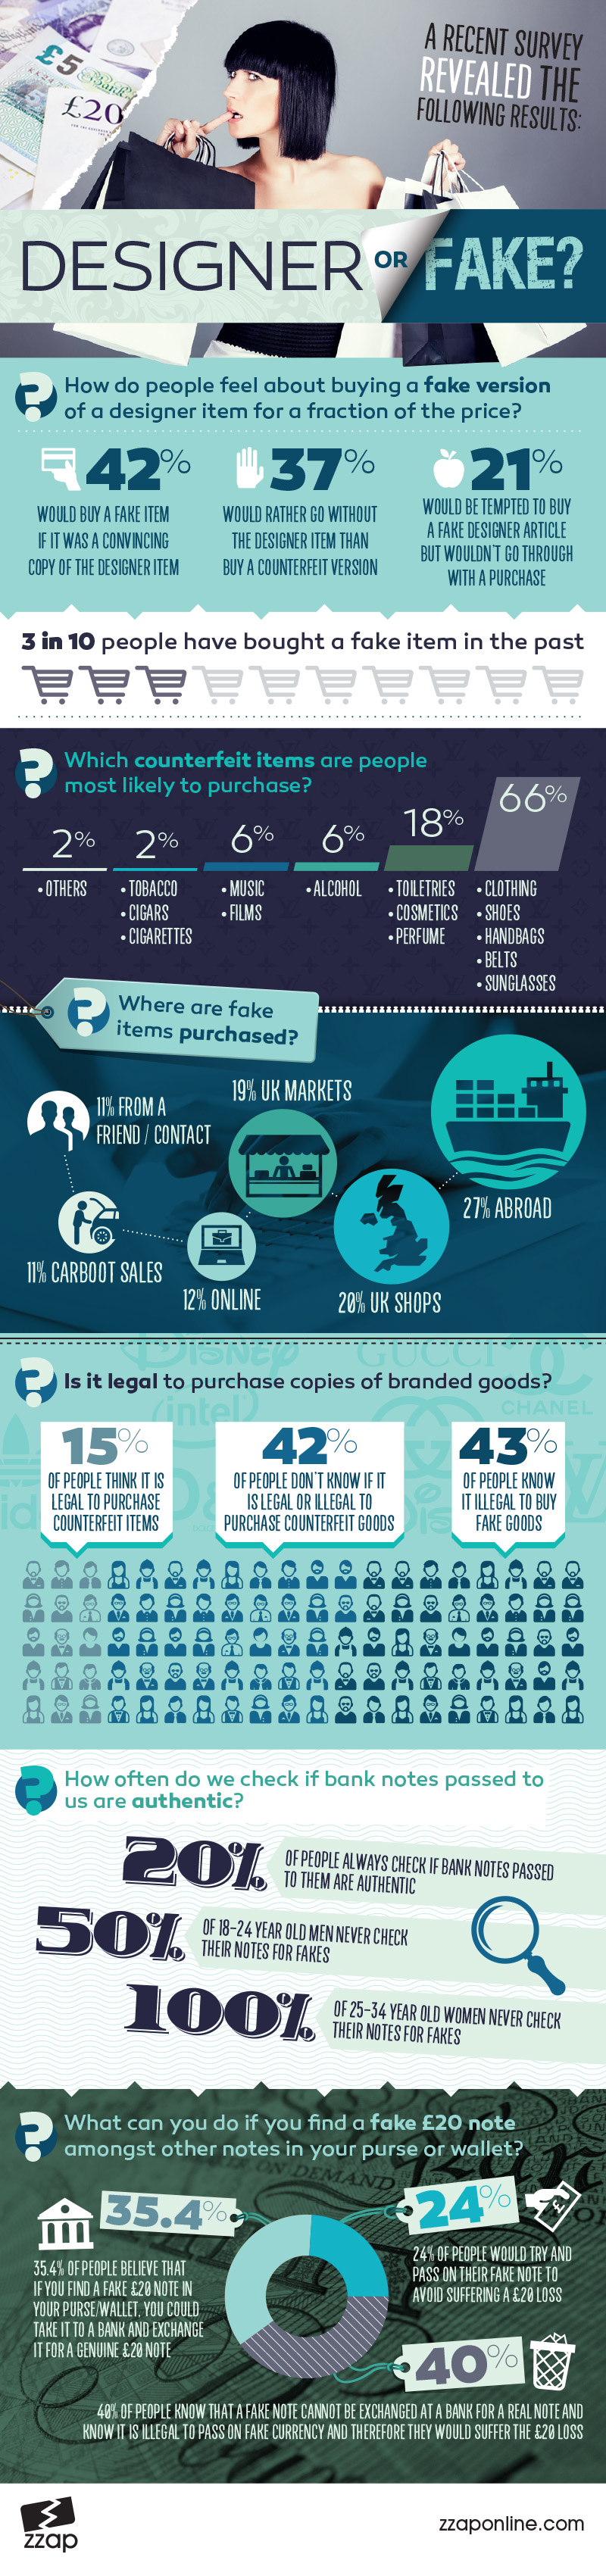 Infographic: What do UK people feel about counterfeit items and counterfeit bank notes?